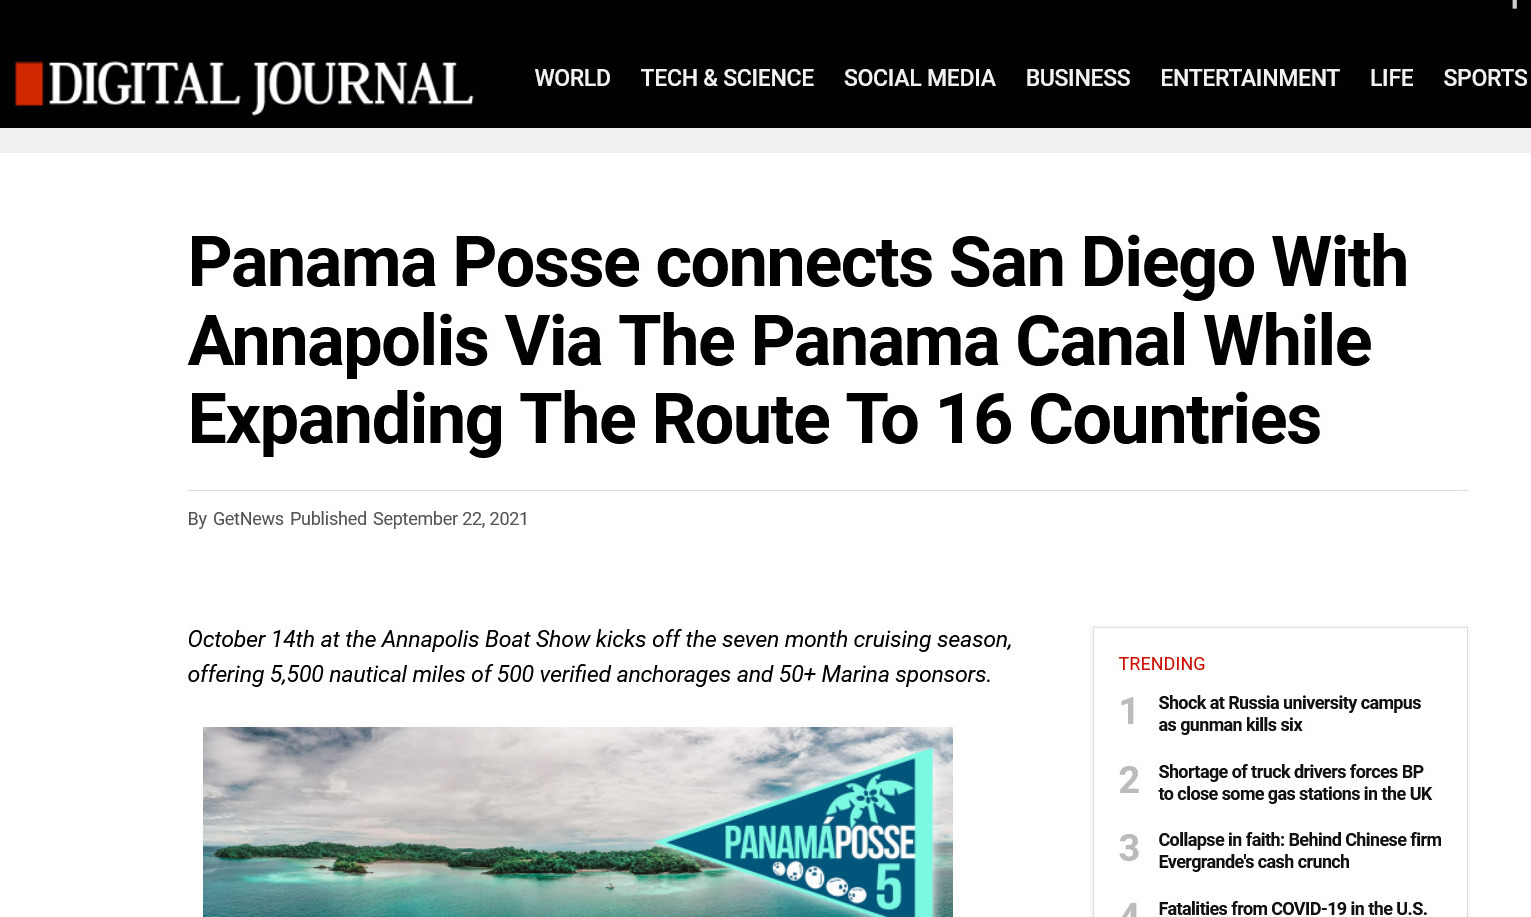 WORLD TECH & SCIENCE SOCIAL MEDIA BUSINESS ENTERTAINMENT LIFE SPORTS Read more: https://www.getnews.info/1166008/panama-posse-connects-san-diego-with-annapolis-via-the-panama-canal-while-expanding-the-route-to-16-countries.html